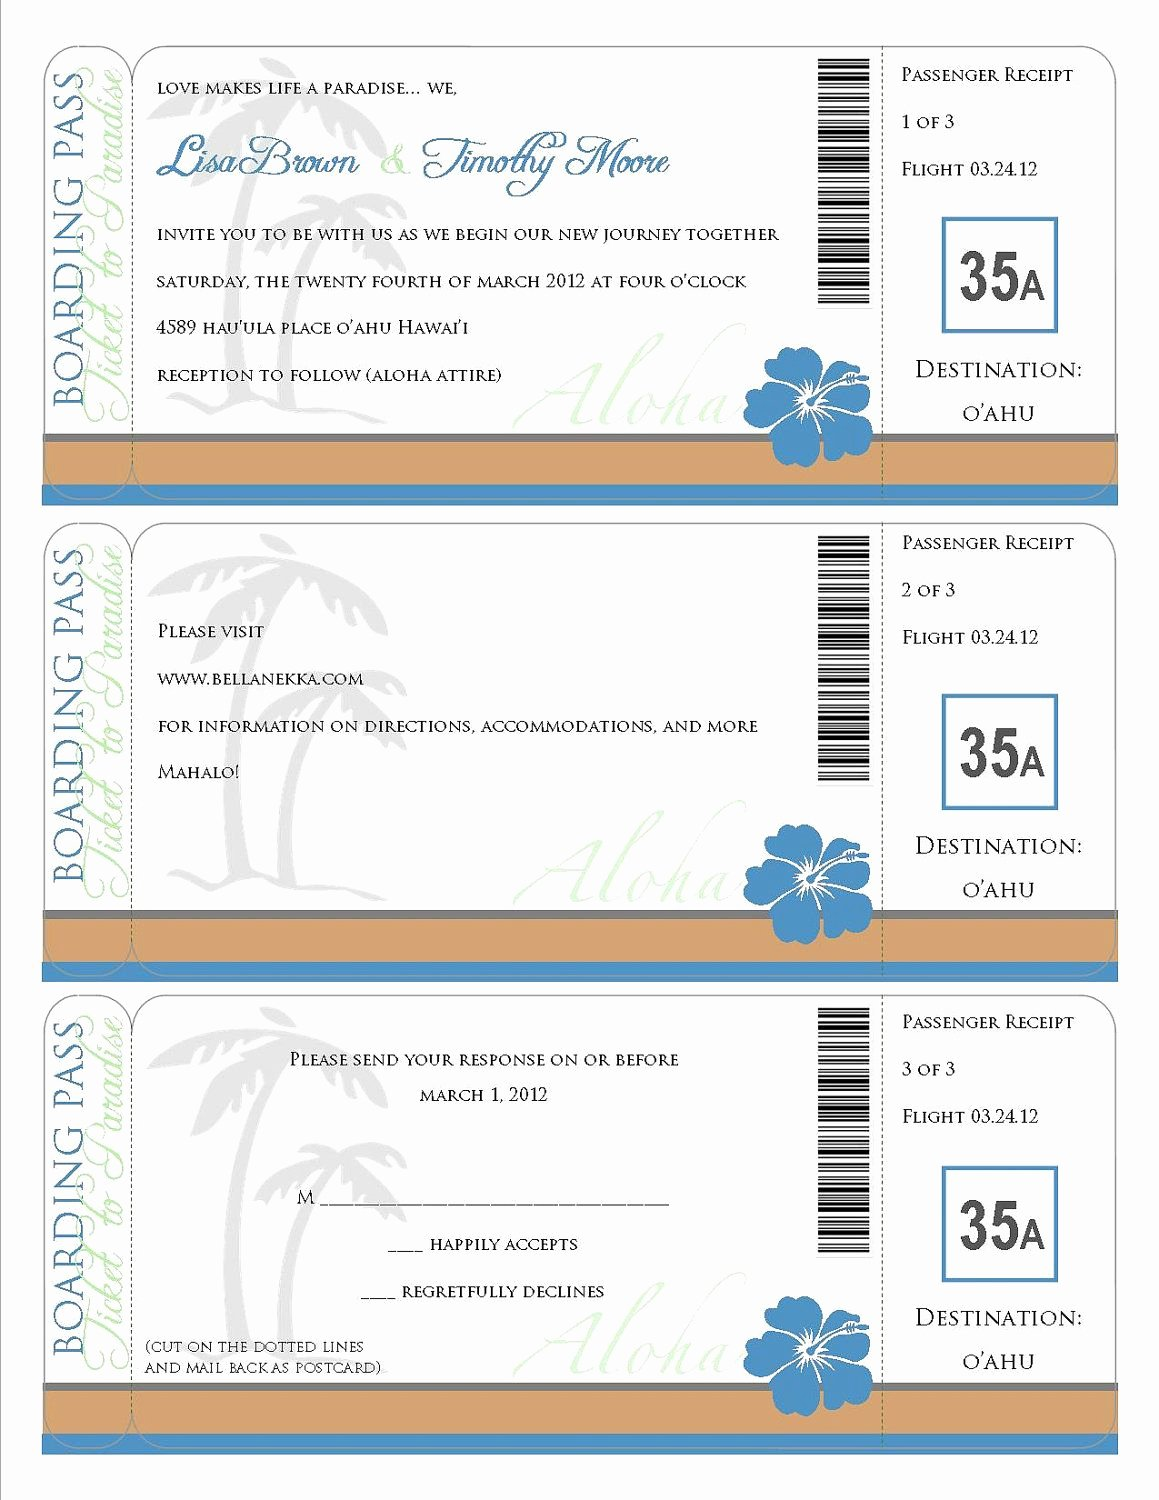 Free Boarding Pass Template Lovely Printable Boarding Pass Travel Information Invitation